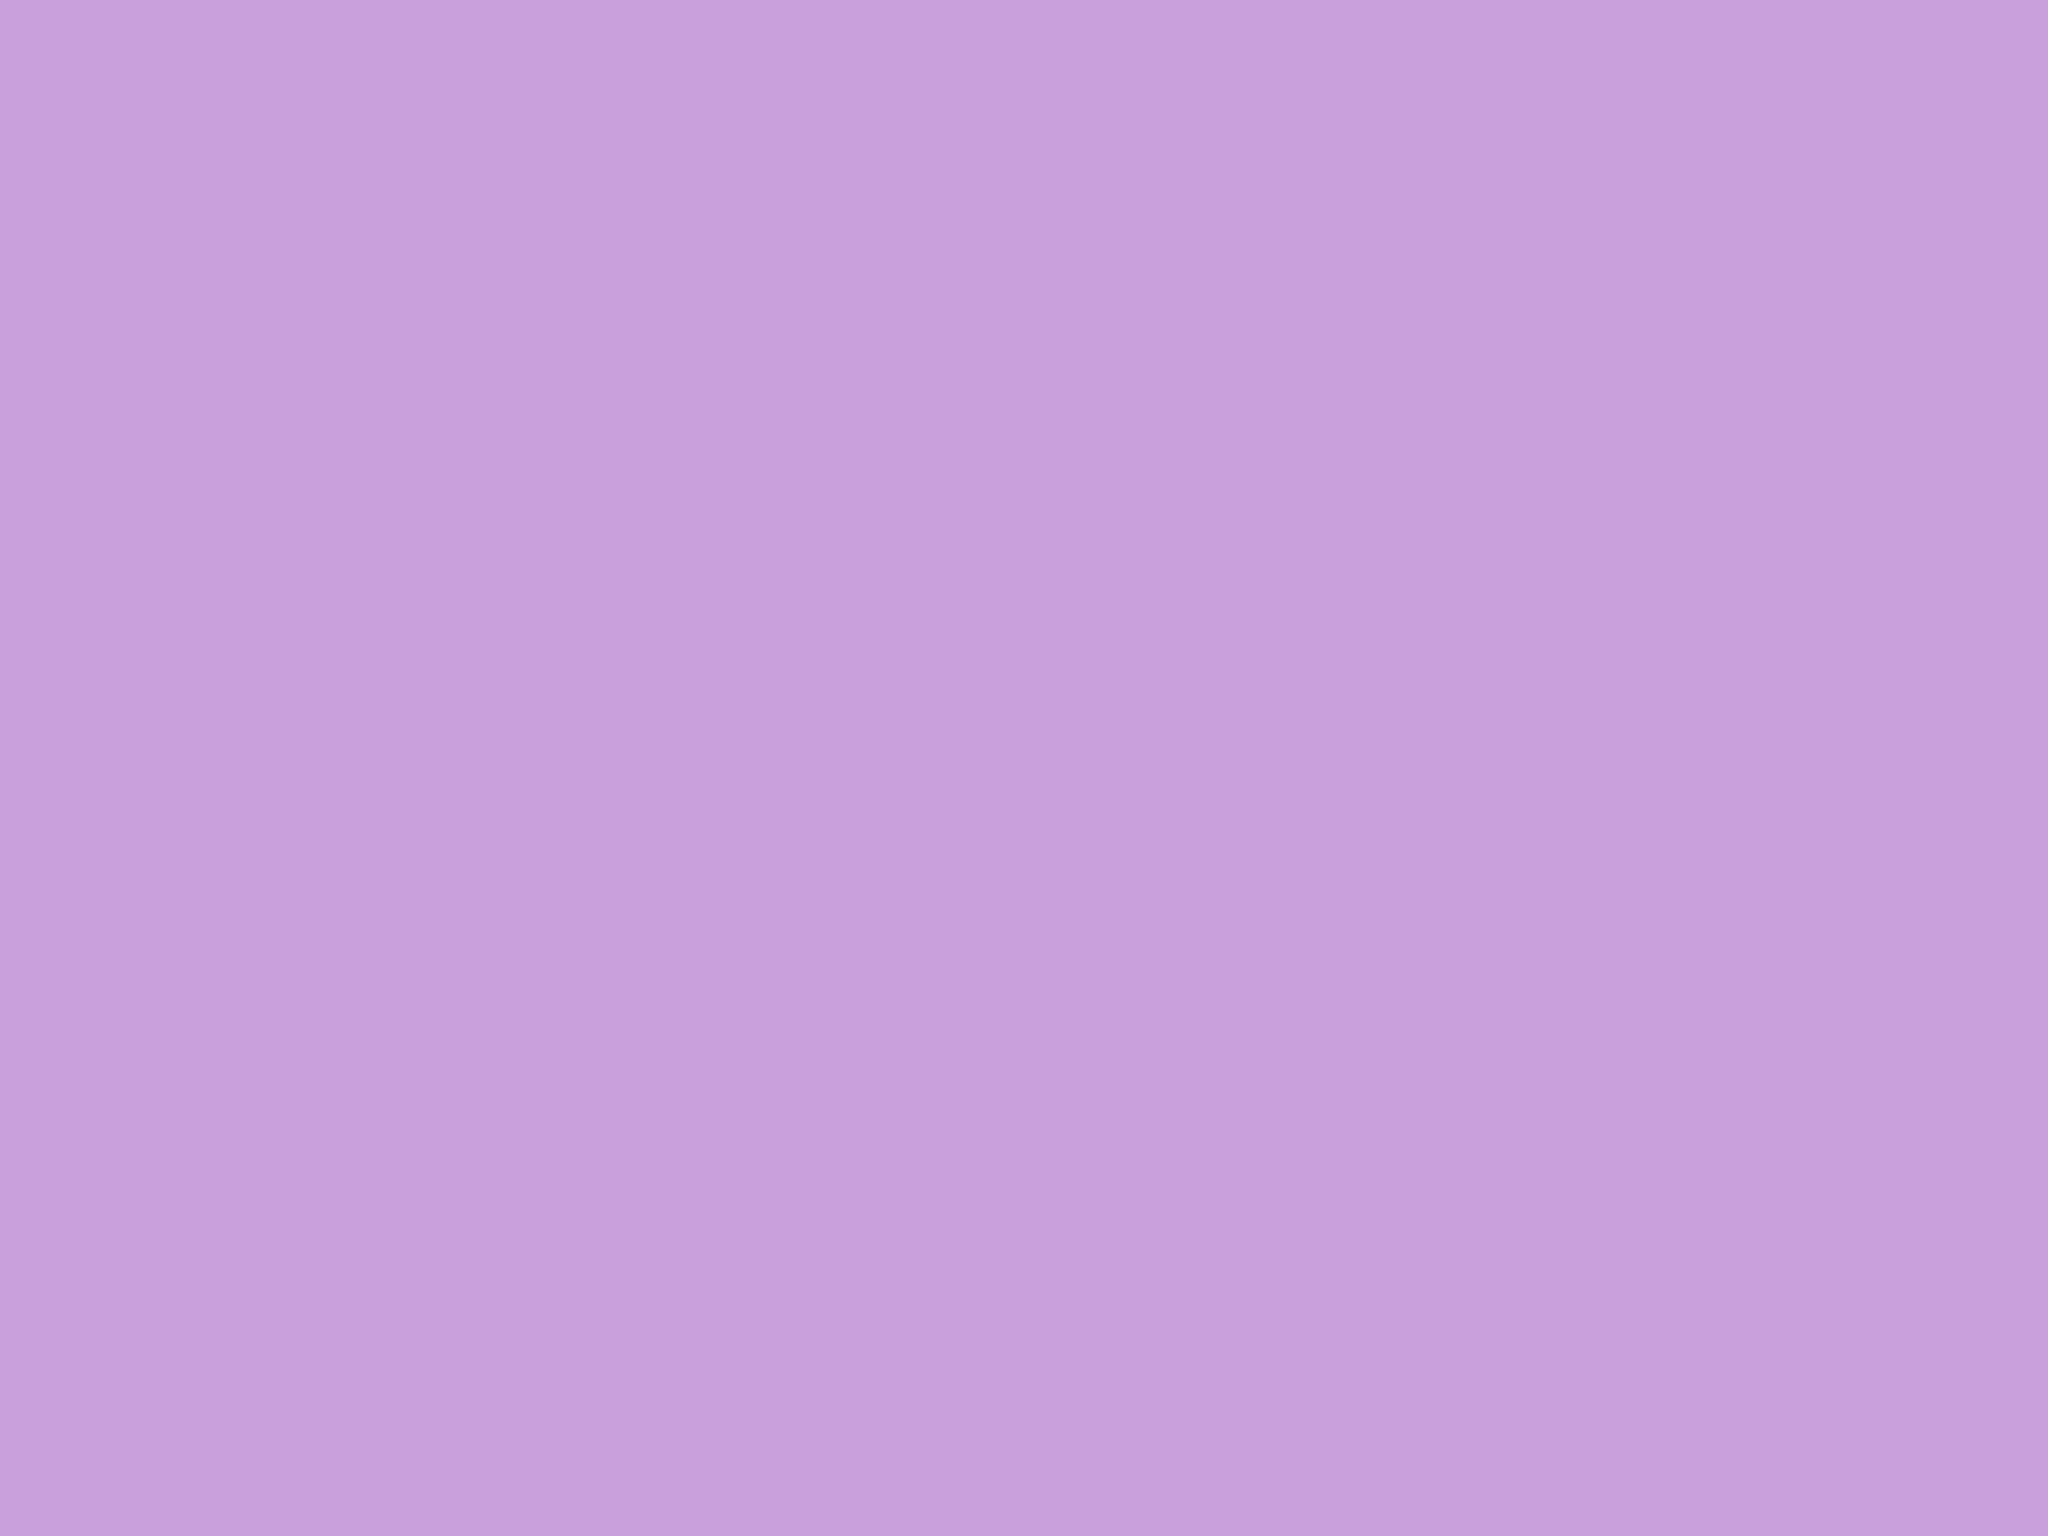 2048x1536 Wisteria Solid Color Background